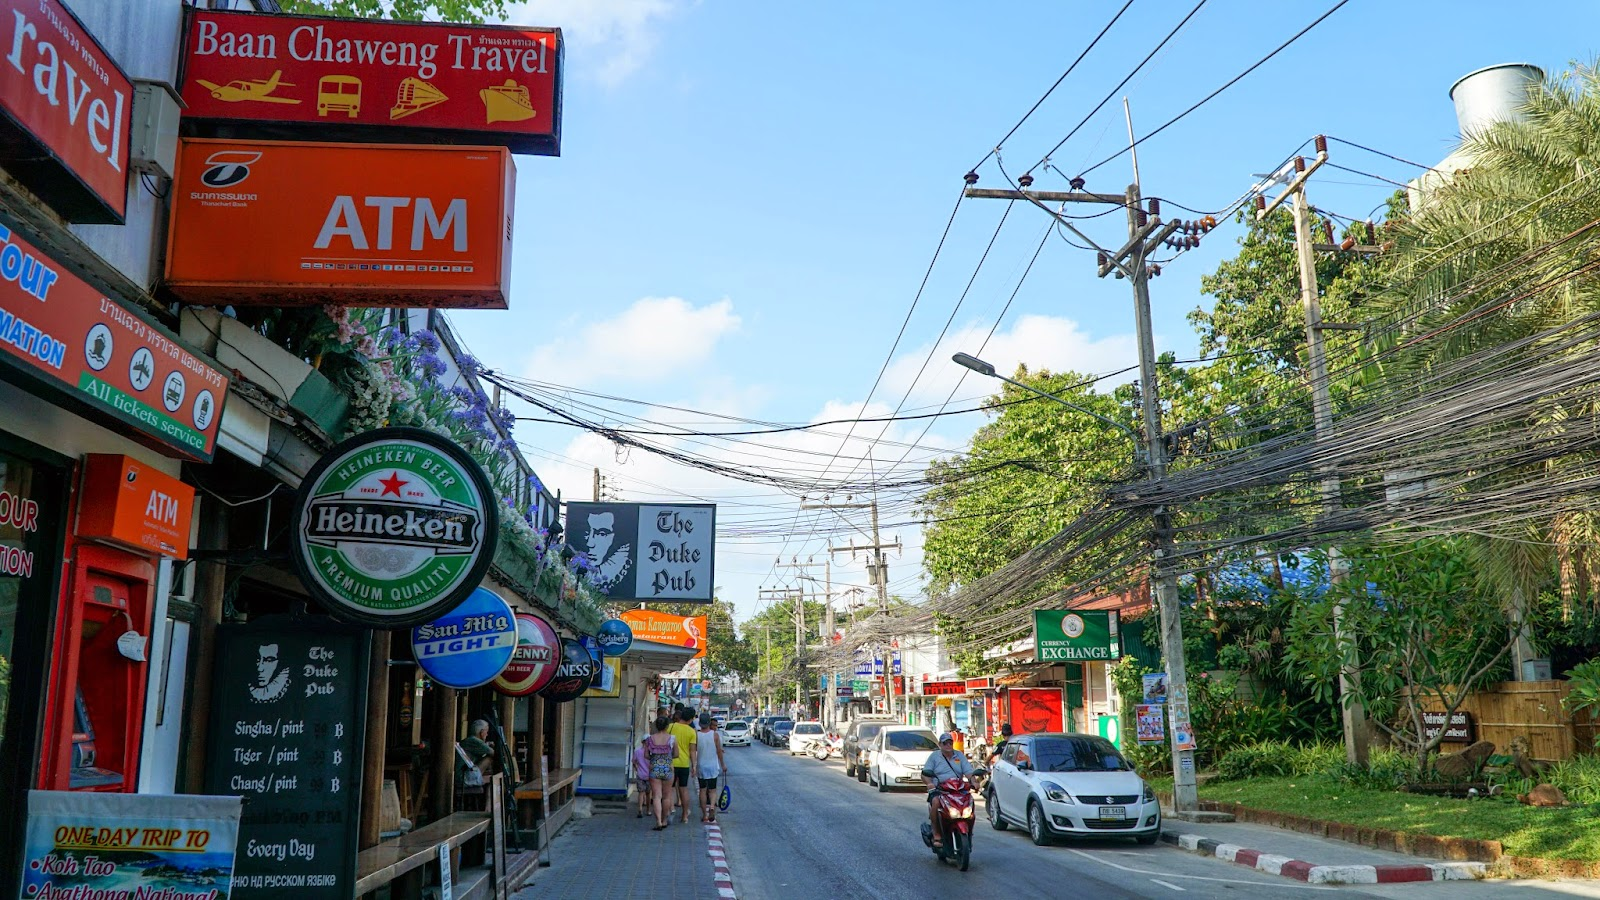 Chaweng Beach Road. On the way back to my hostel